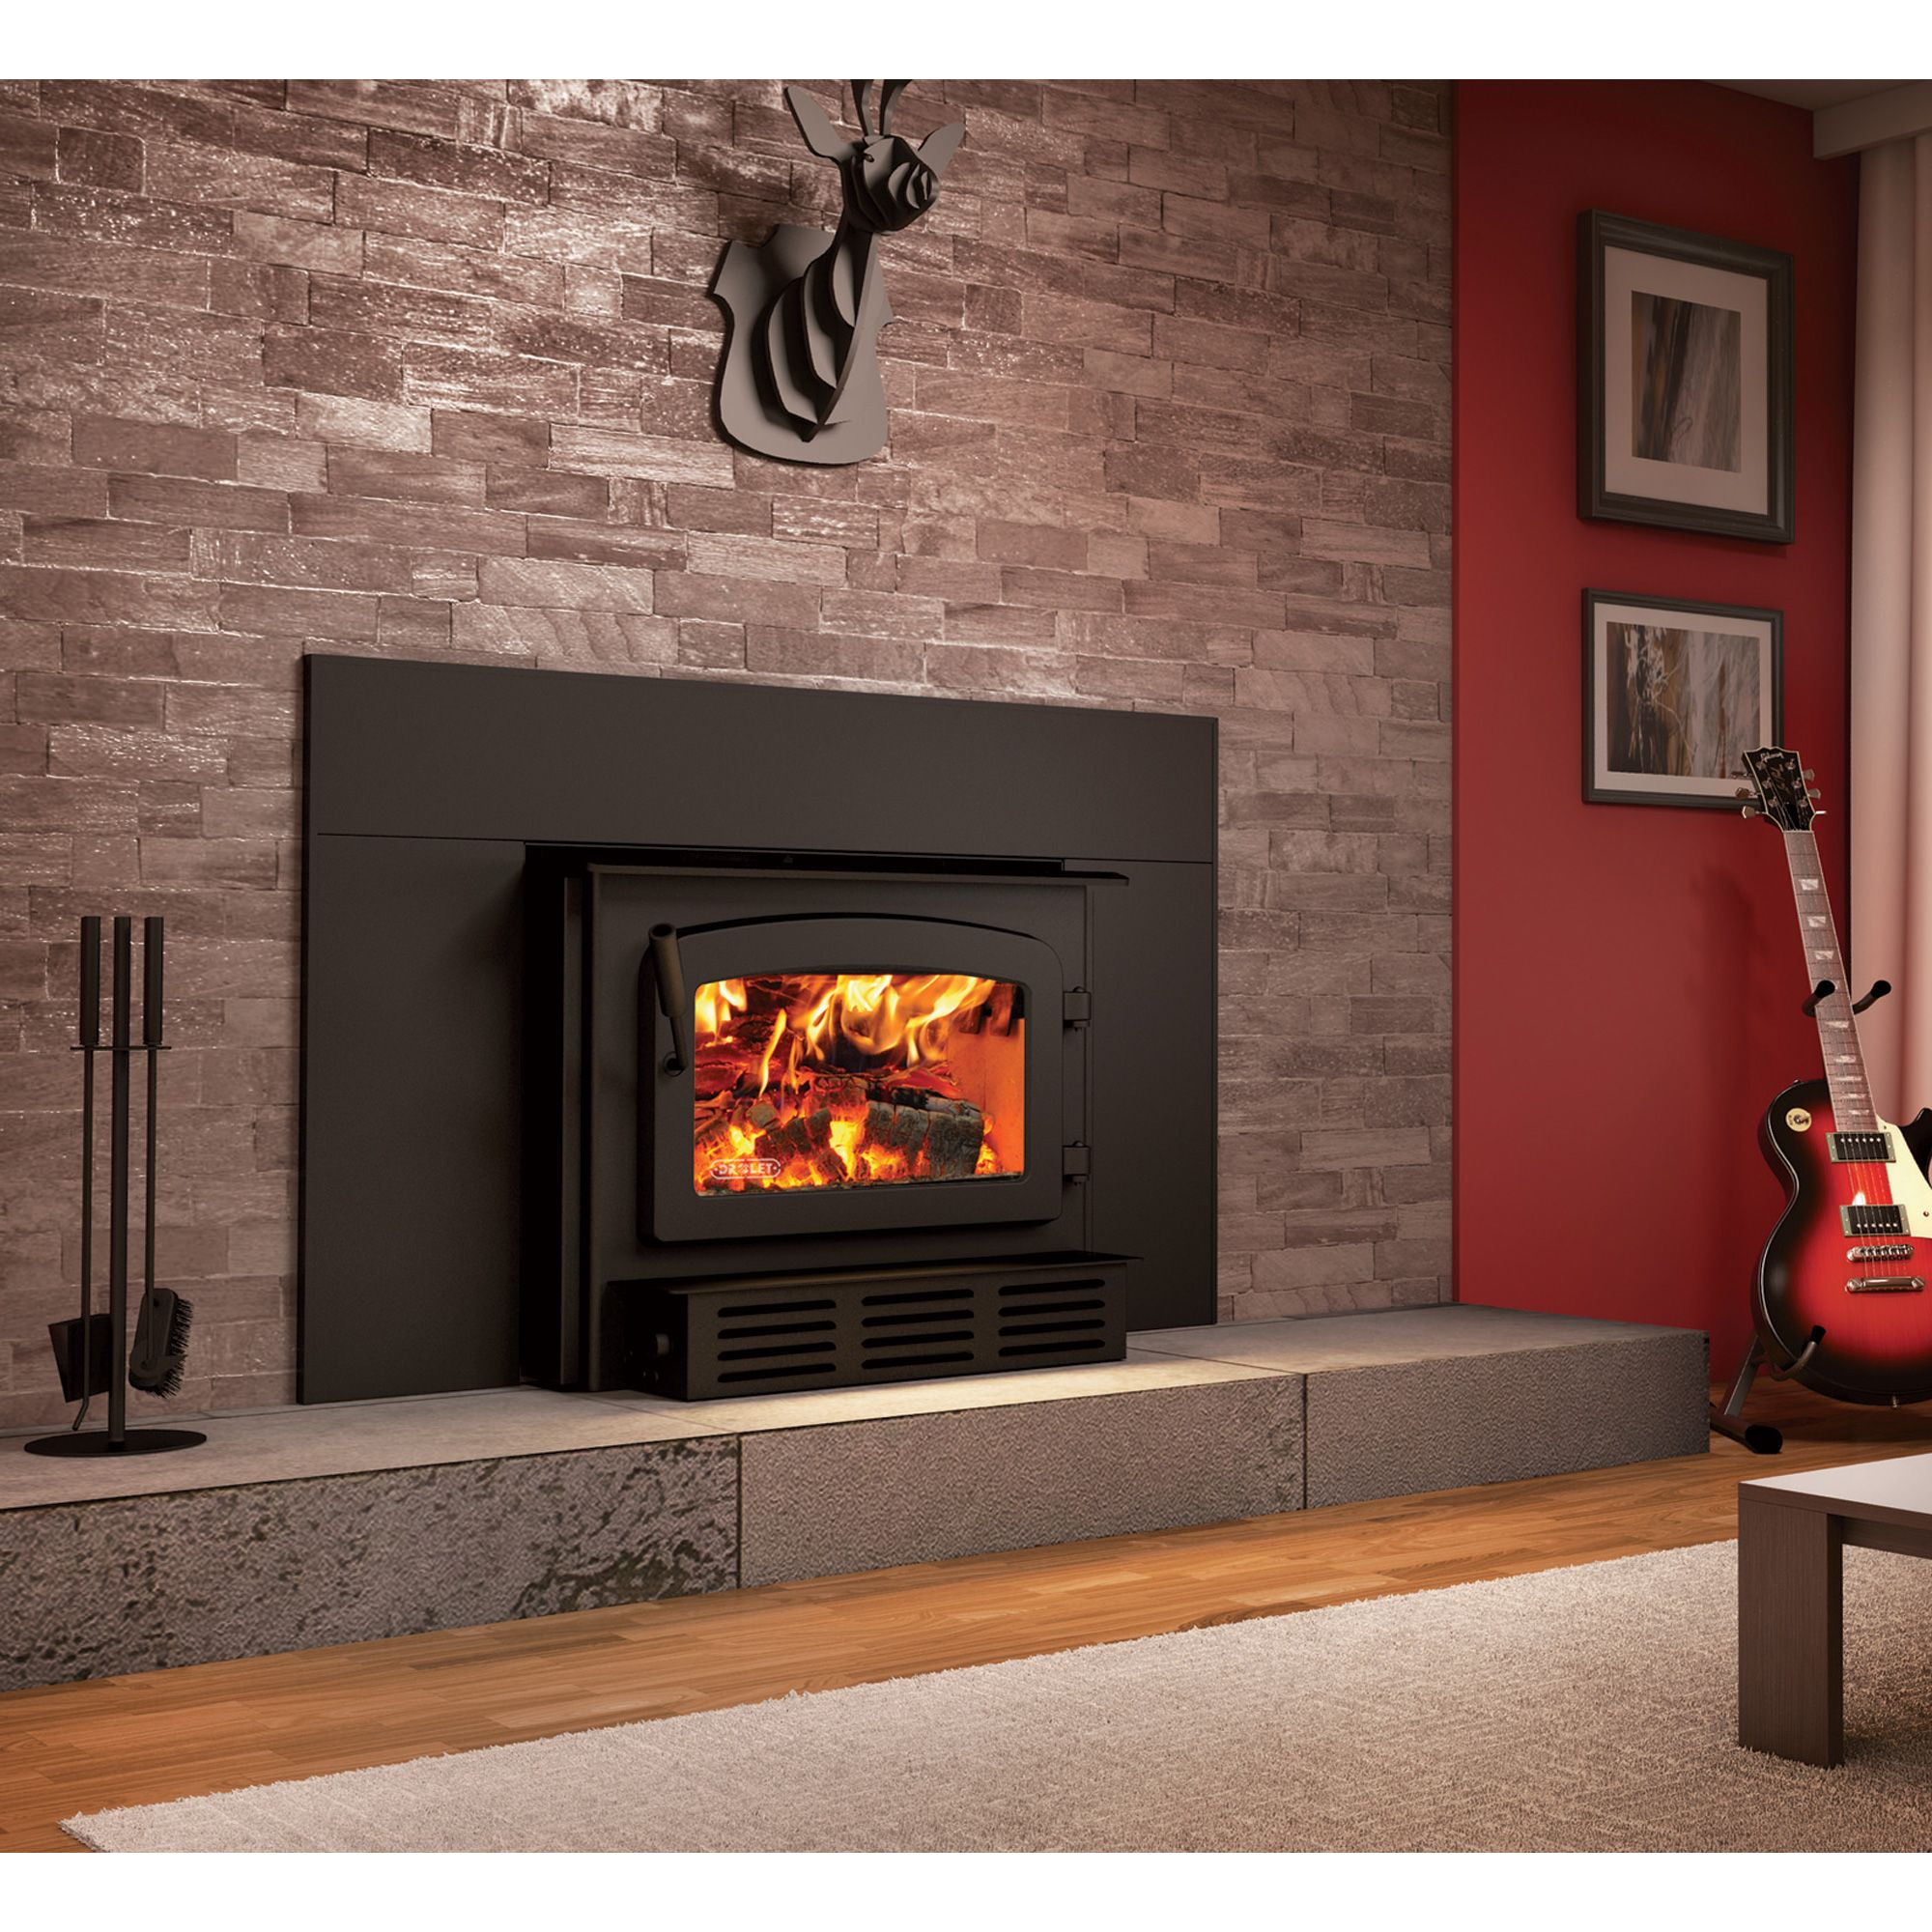 drolet escape 1800i fireplace wood insert u2014 75 000 btu epa